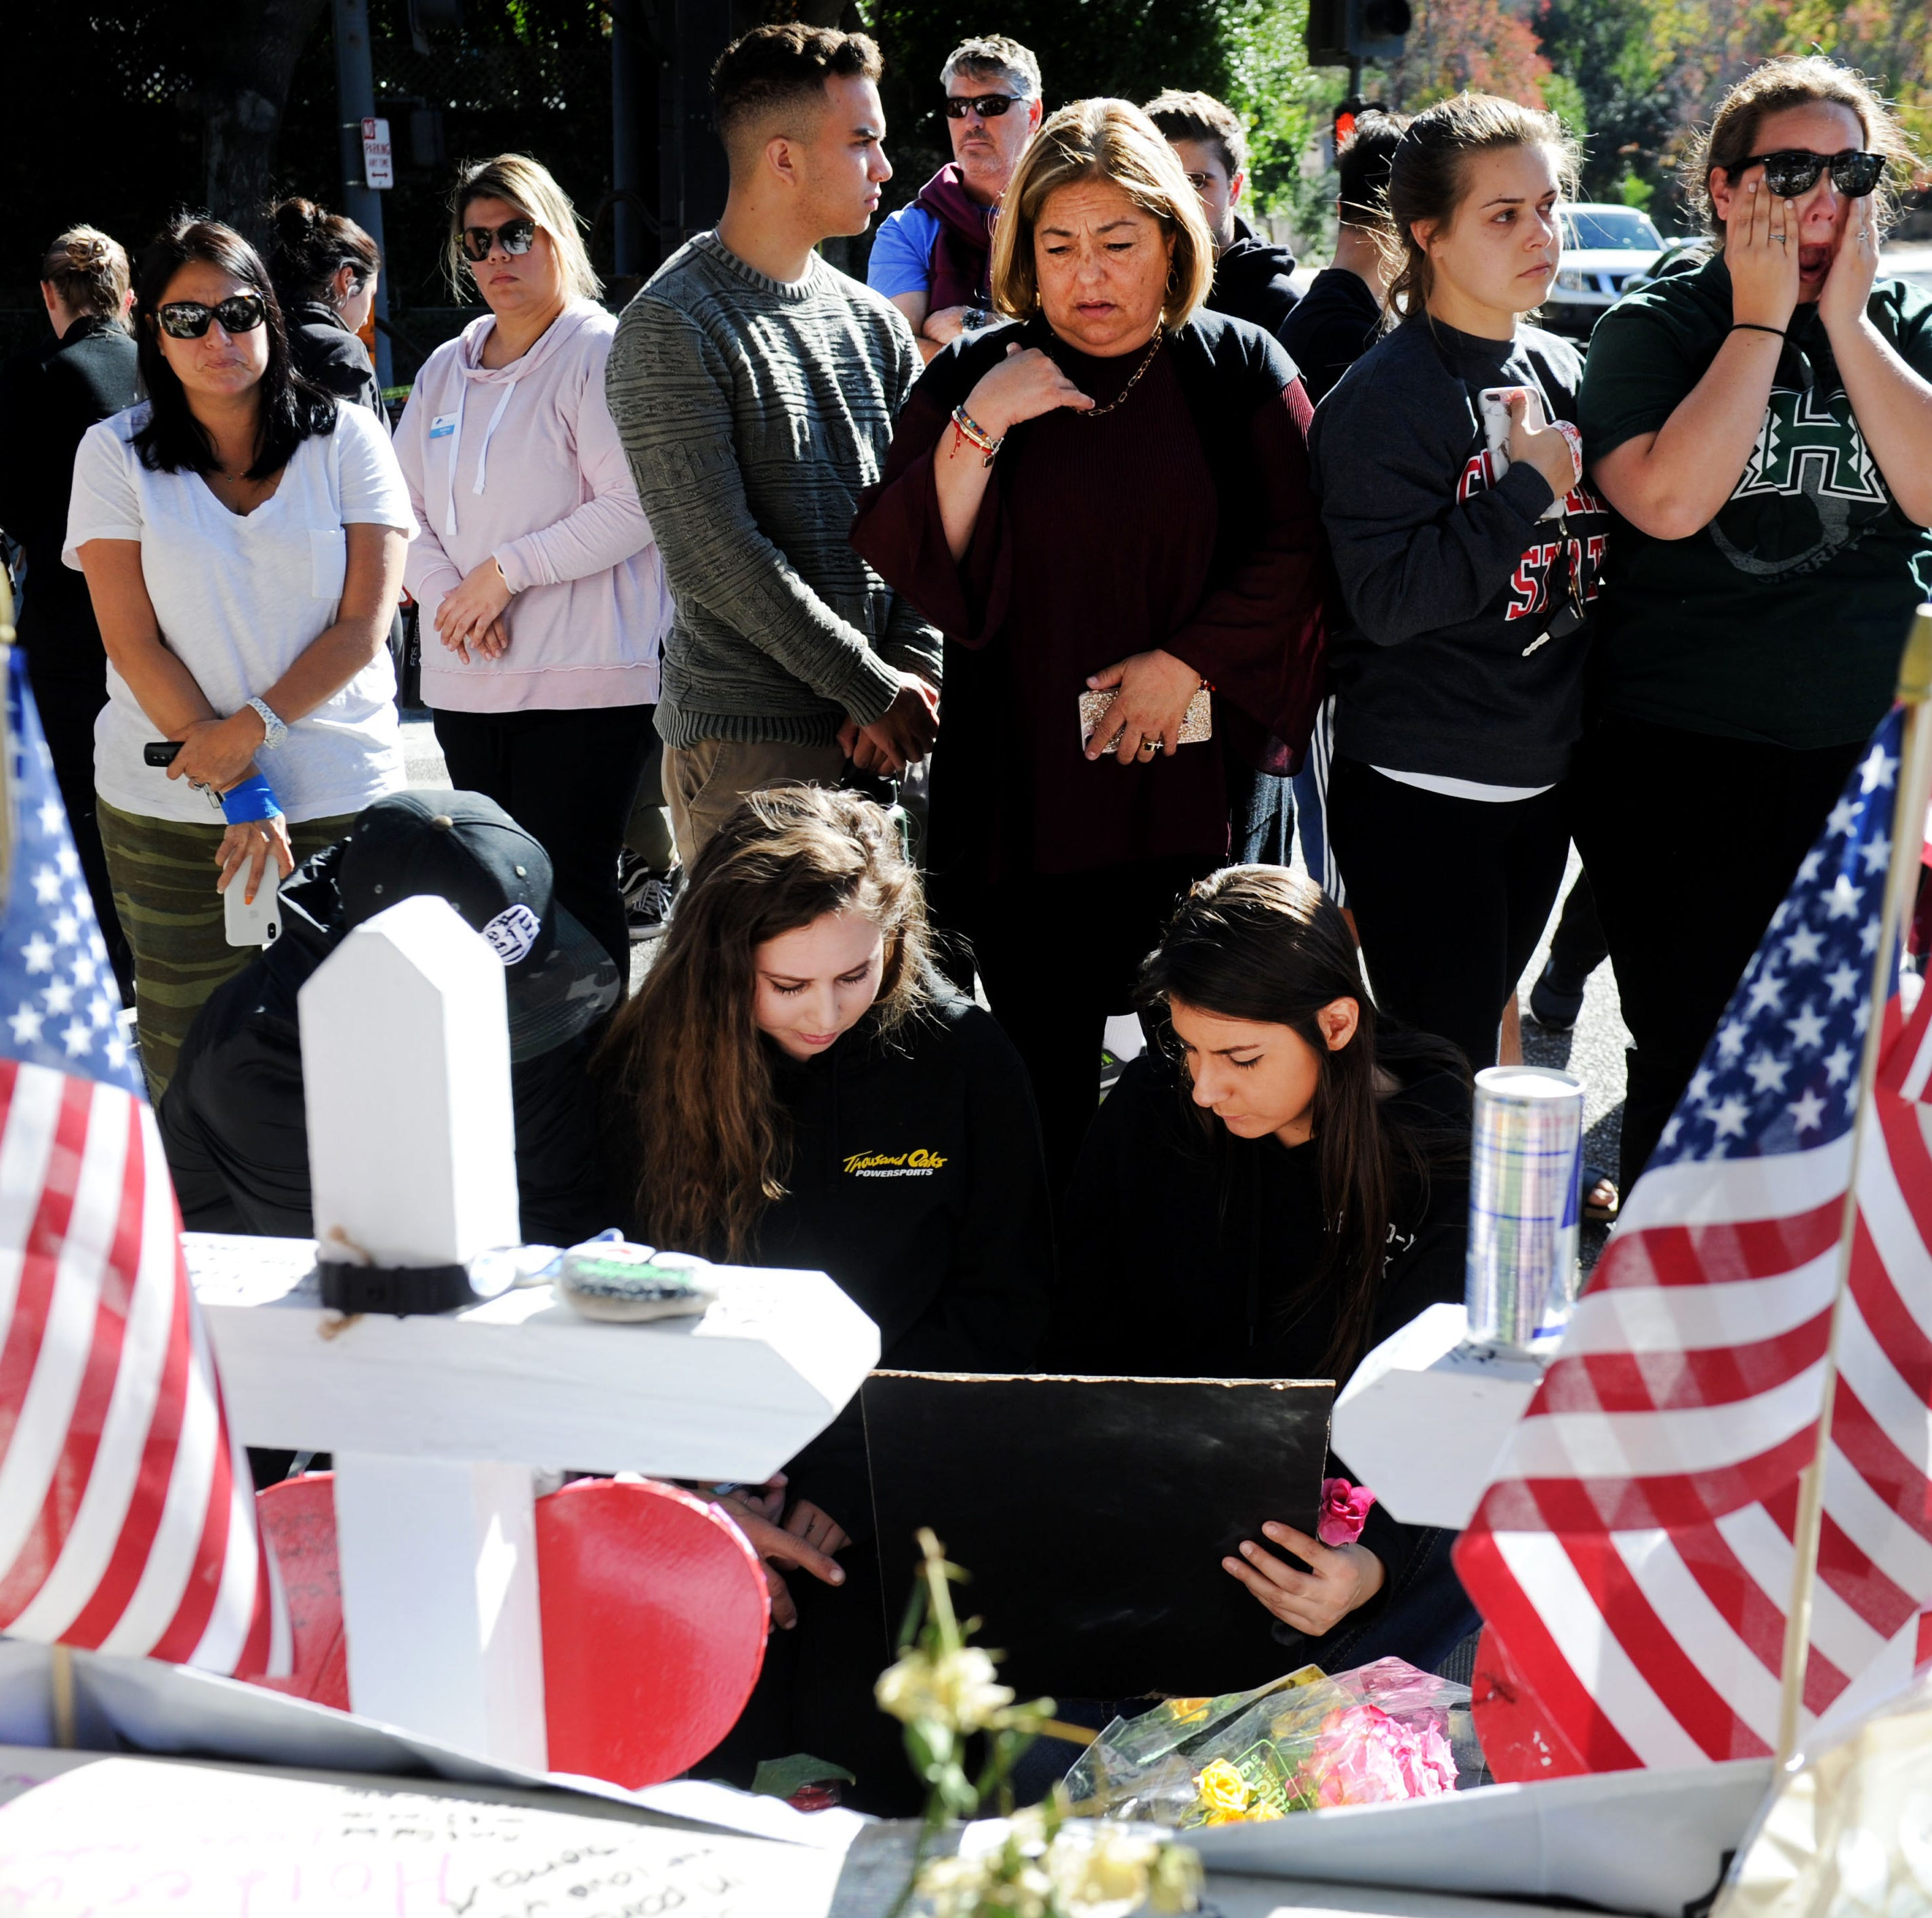 Key part of probe into Thousand Oaks shooting wrapping up